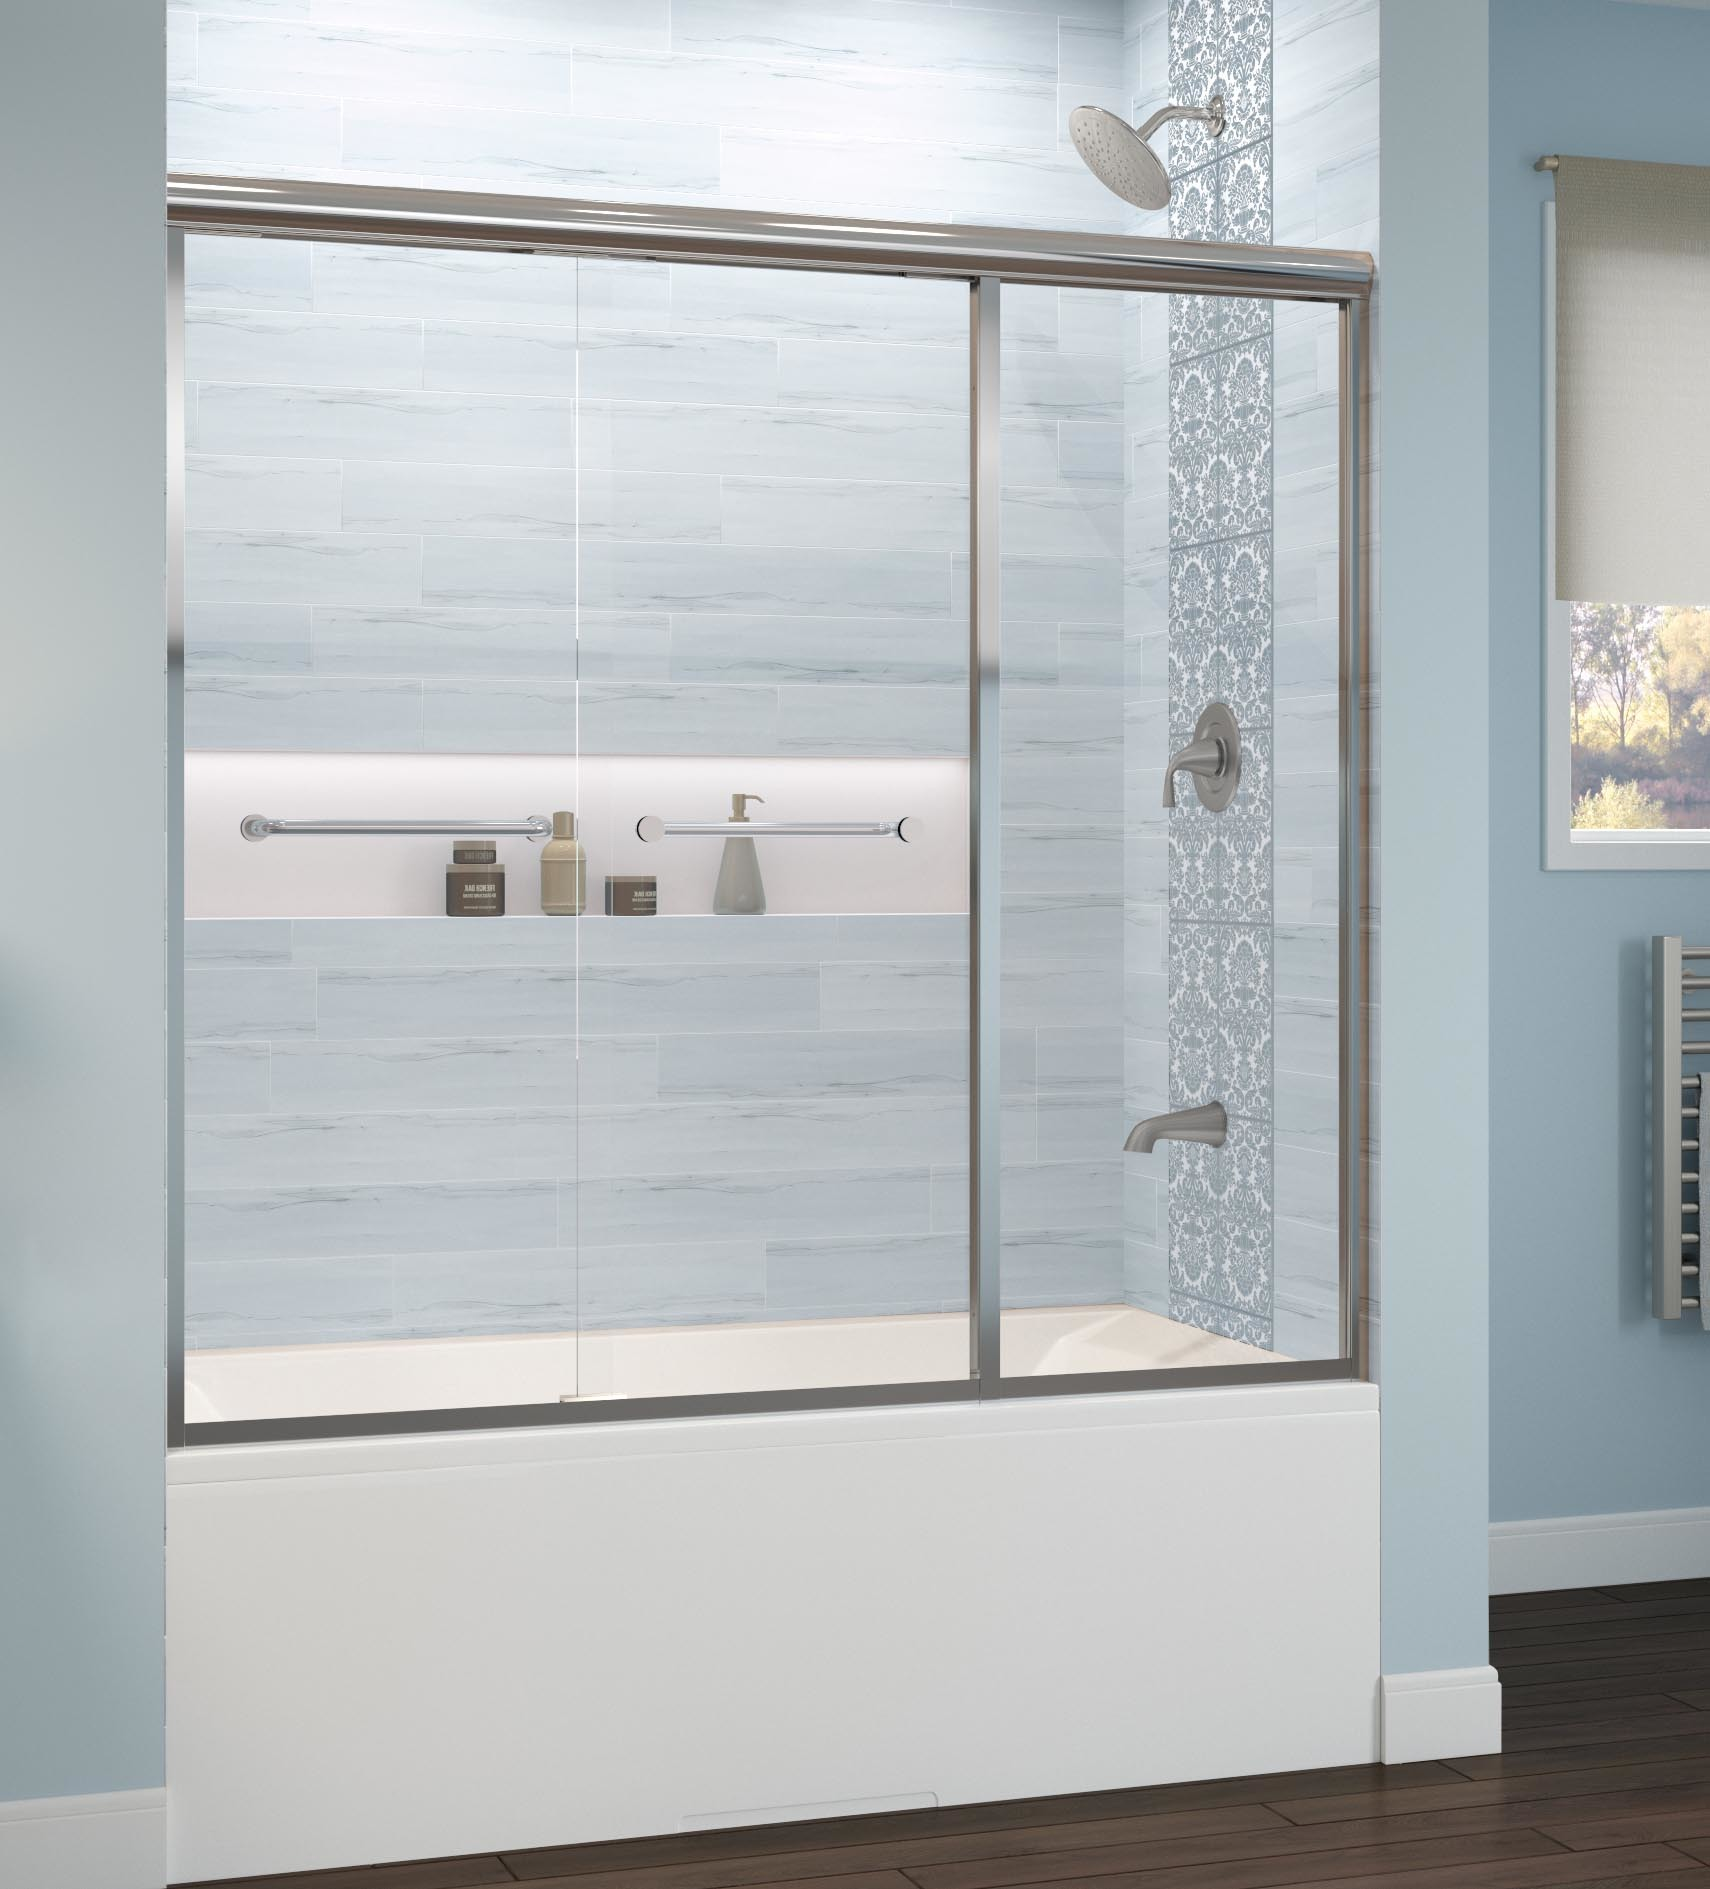 Infinity Semi Frameless 1 4 Inch Glass Sliding With Inline Panel Bath Tub Door Basco Shower Doors